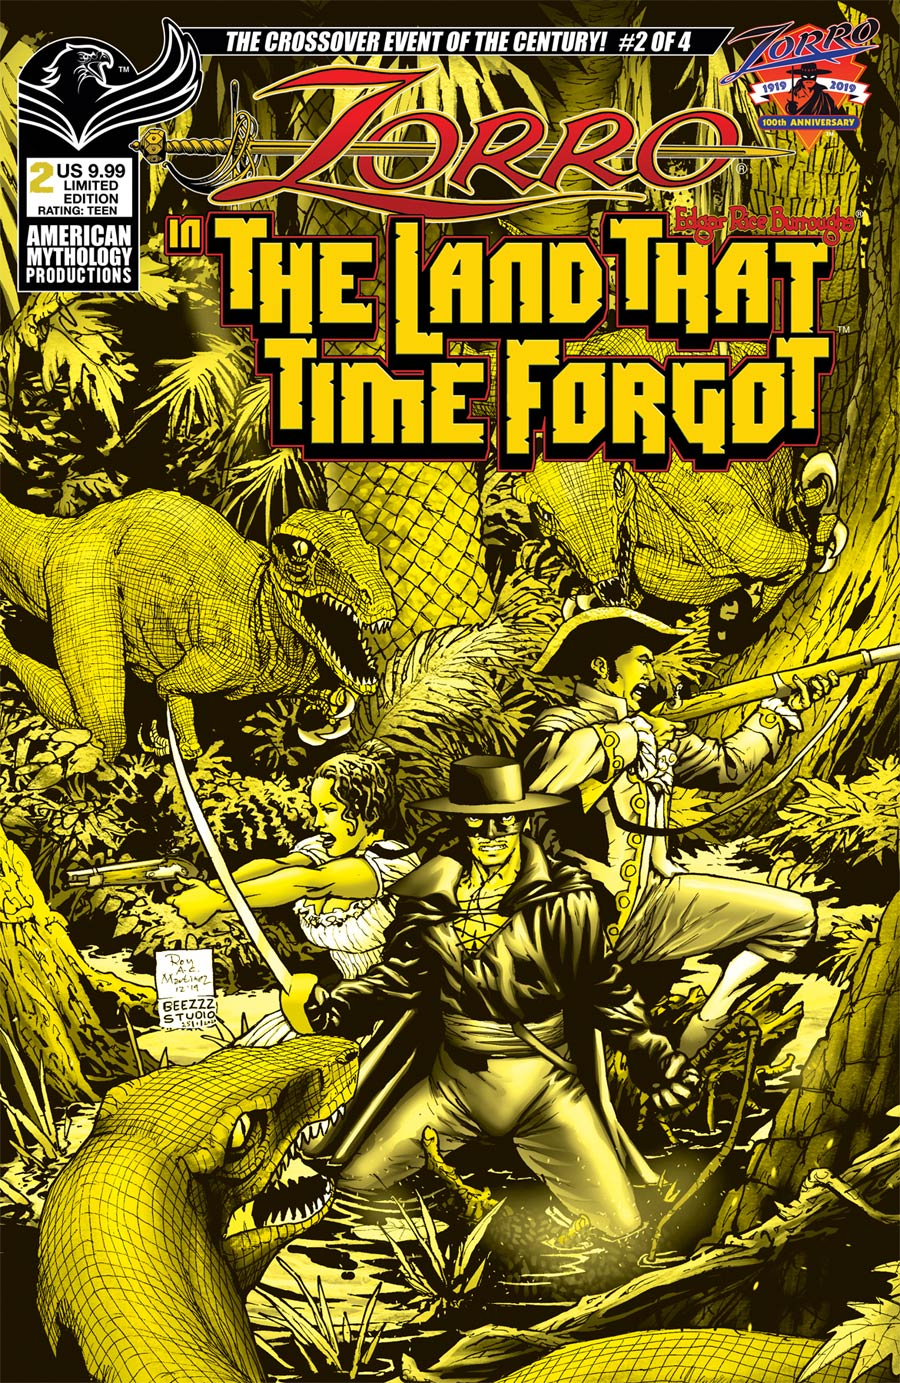 Zorro In The Land That Time Forgot #2 Cover B Limited Edition Roy Allan Martinez Variant Cover